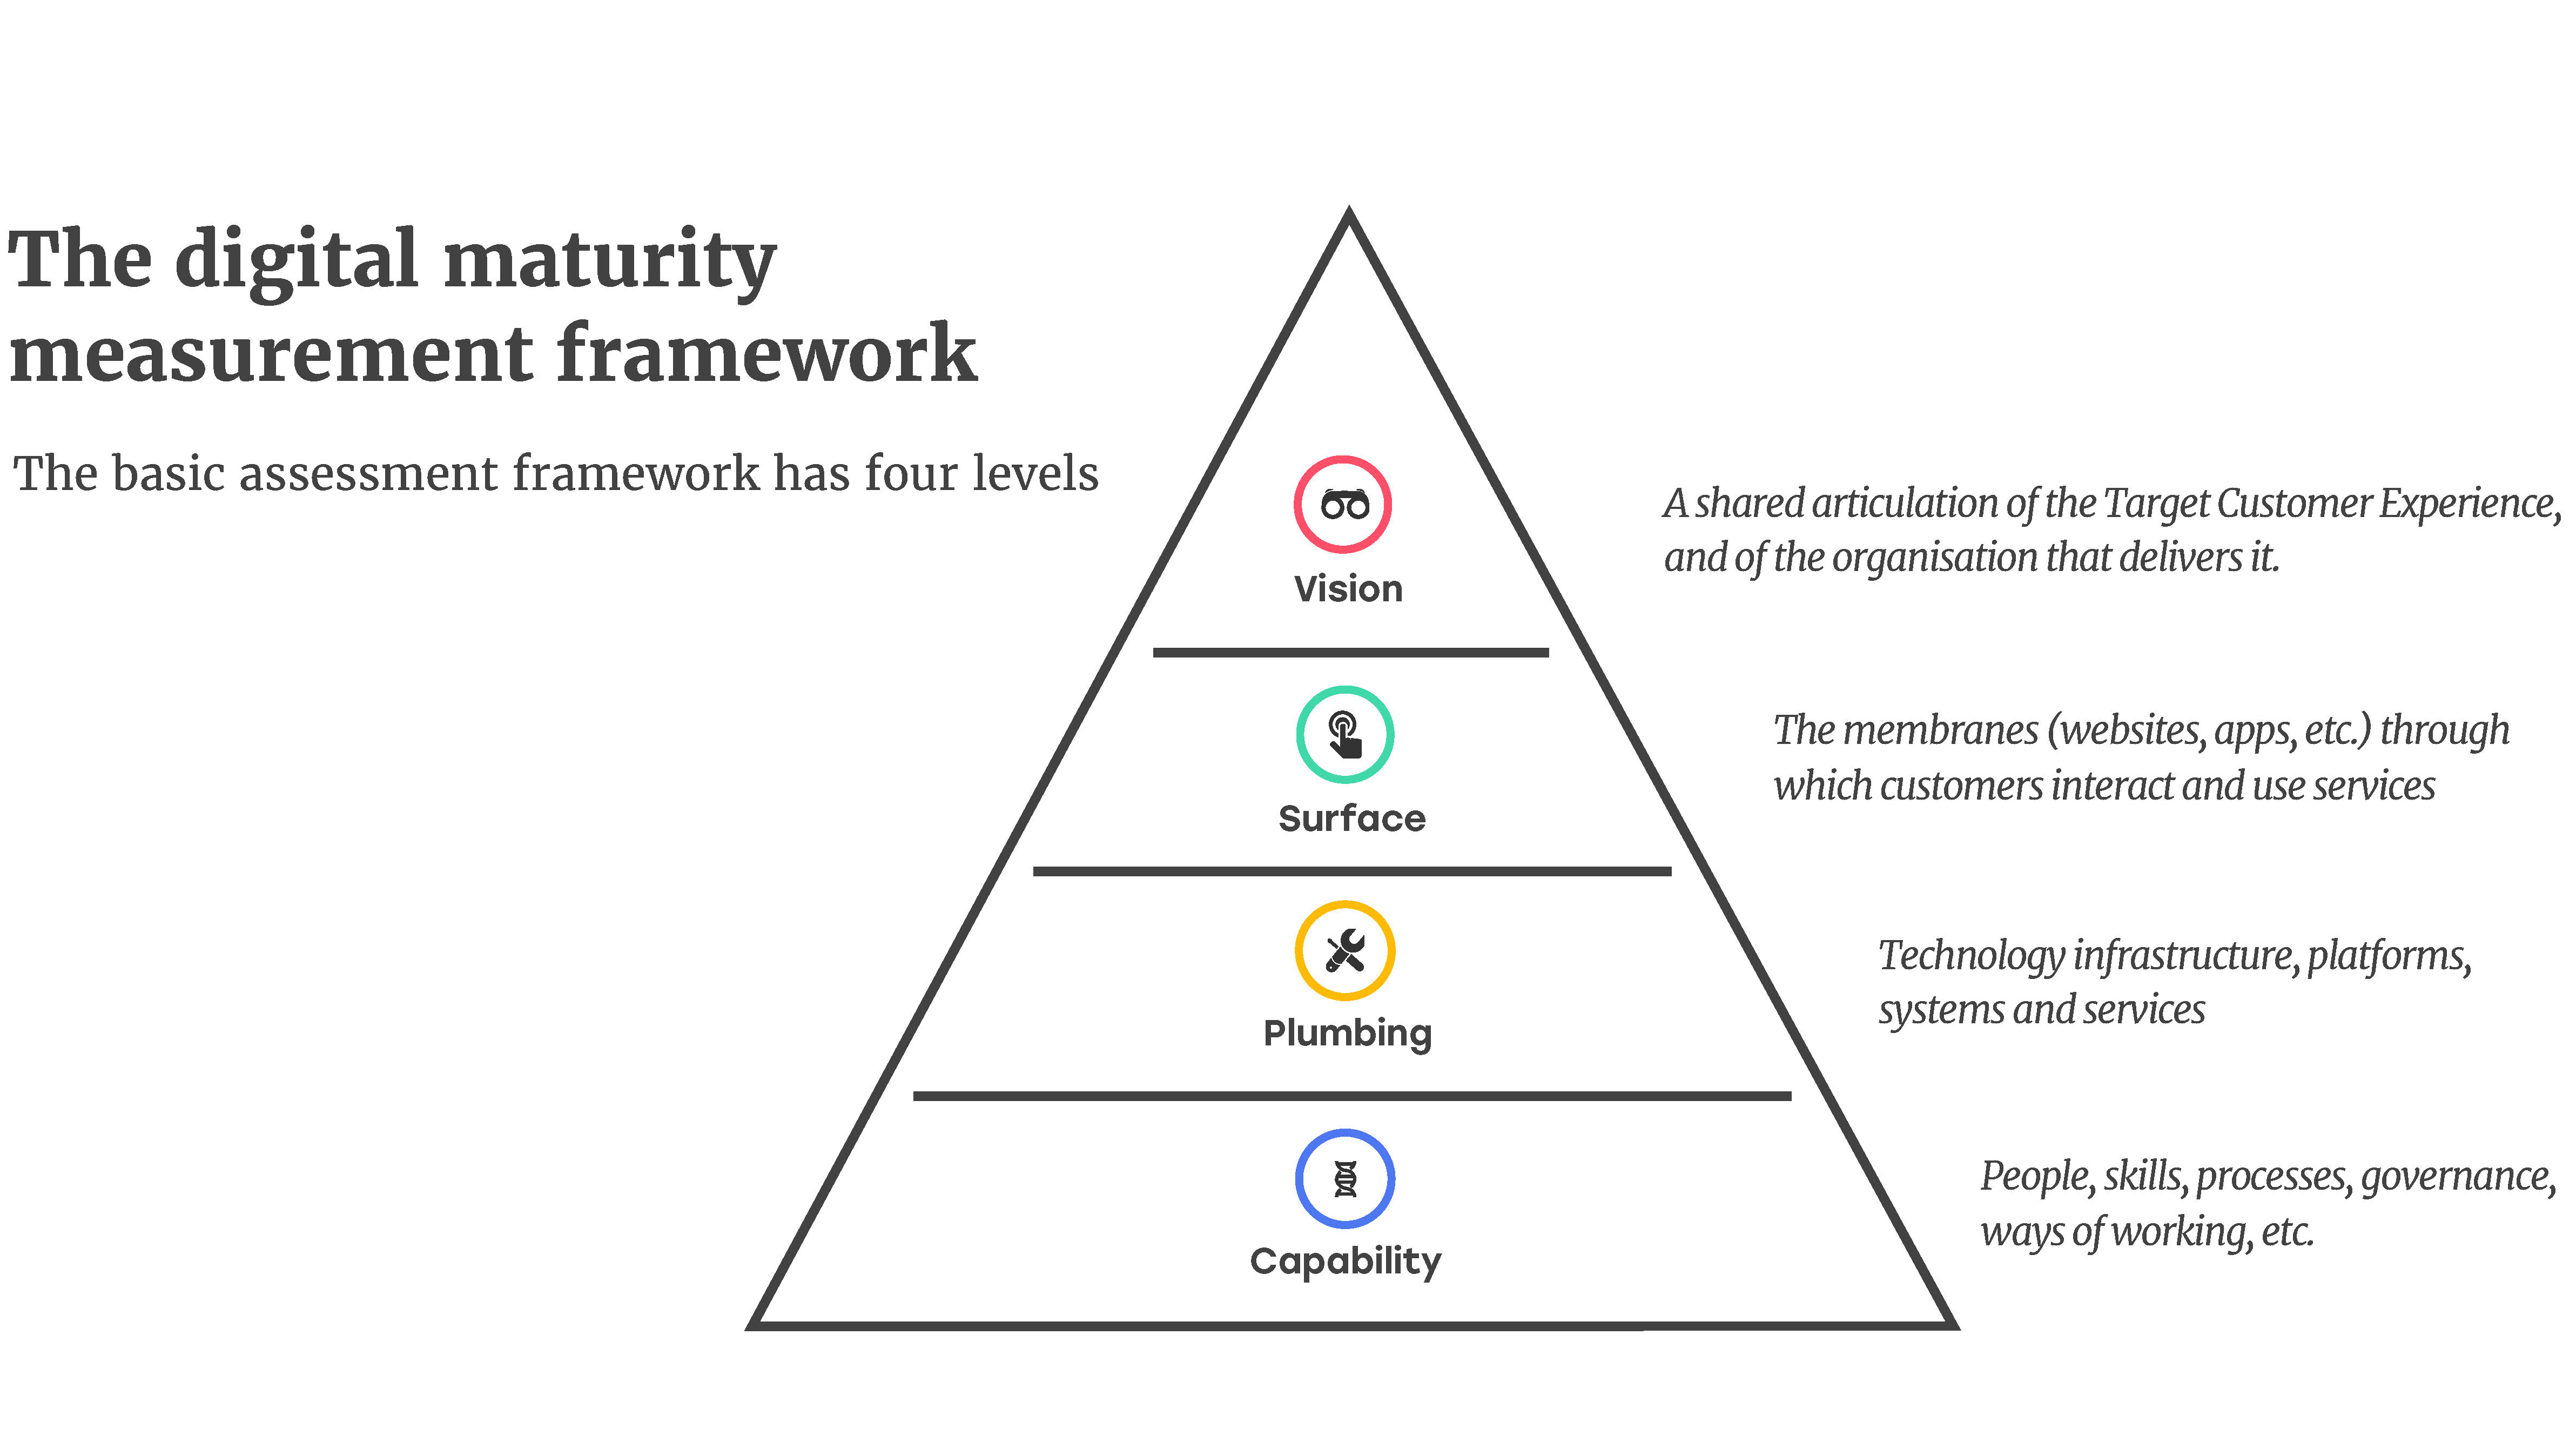 Friday Charity Digital Service Maturity Page 1